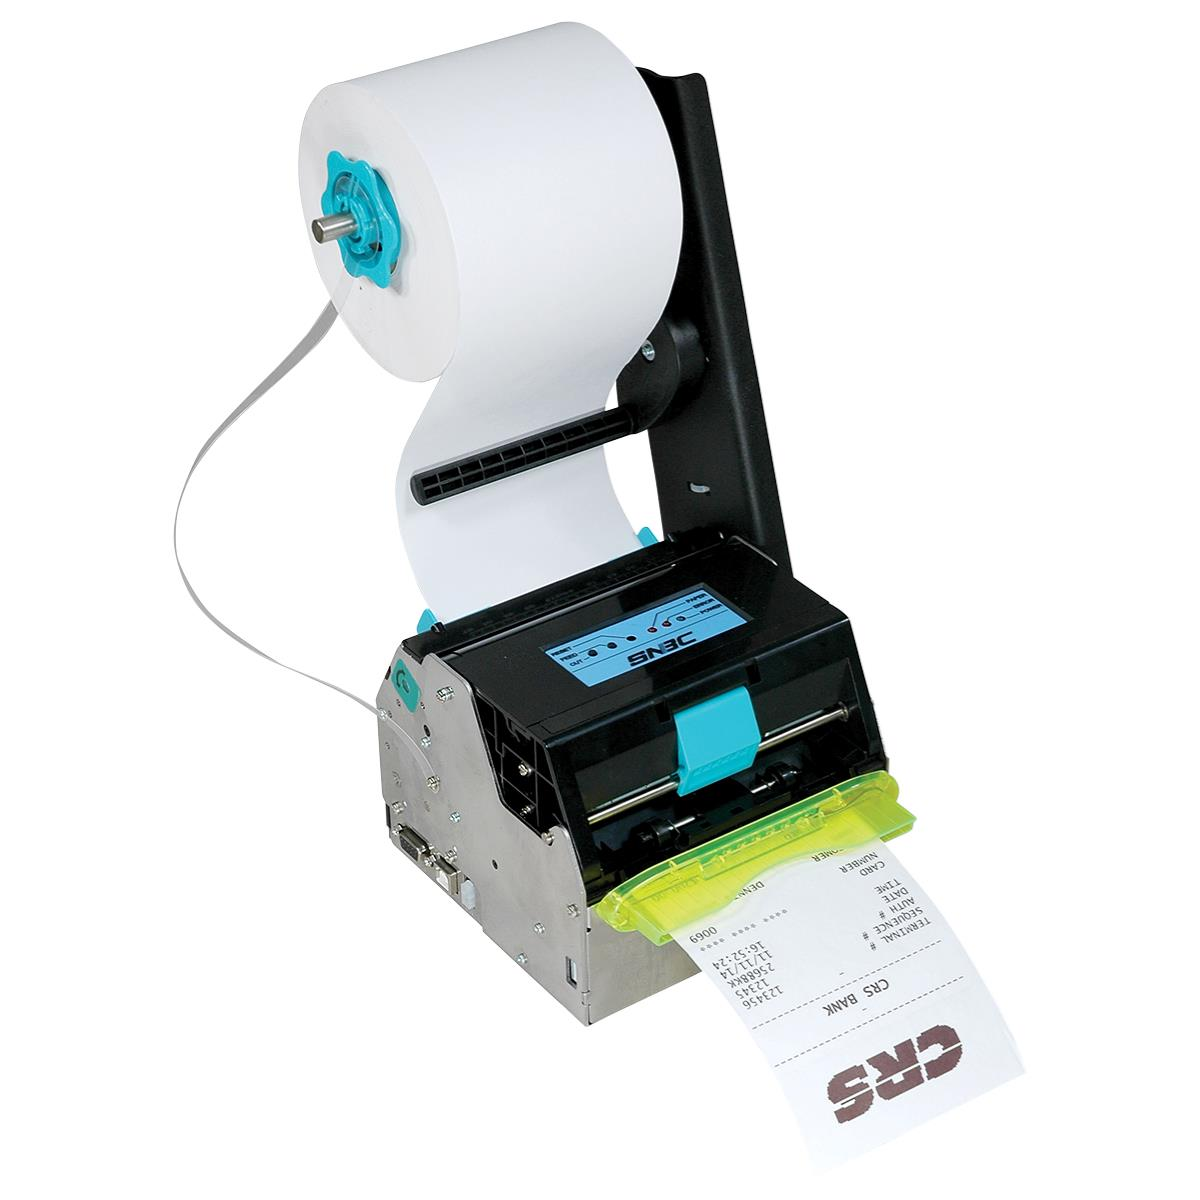 BK-T680 80mm two-sided Thermal KIOSK Printer